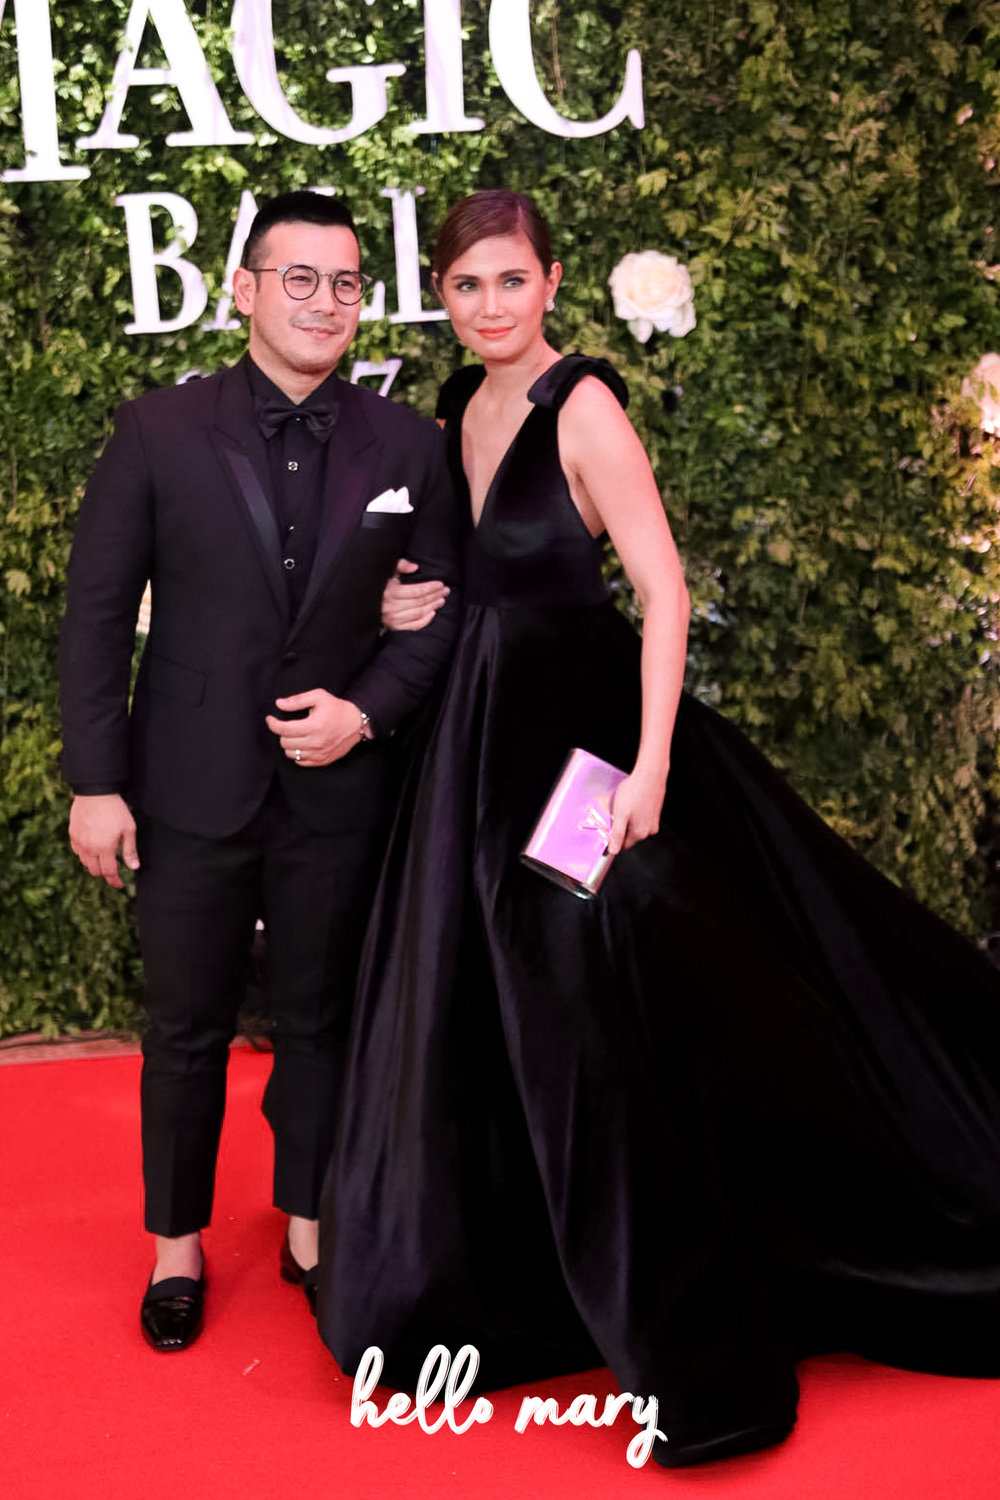 John and Isabel Prats - Isabel's gown is something I'd wear (if I were as thin!).